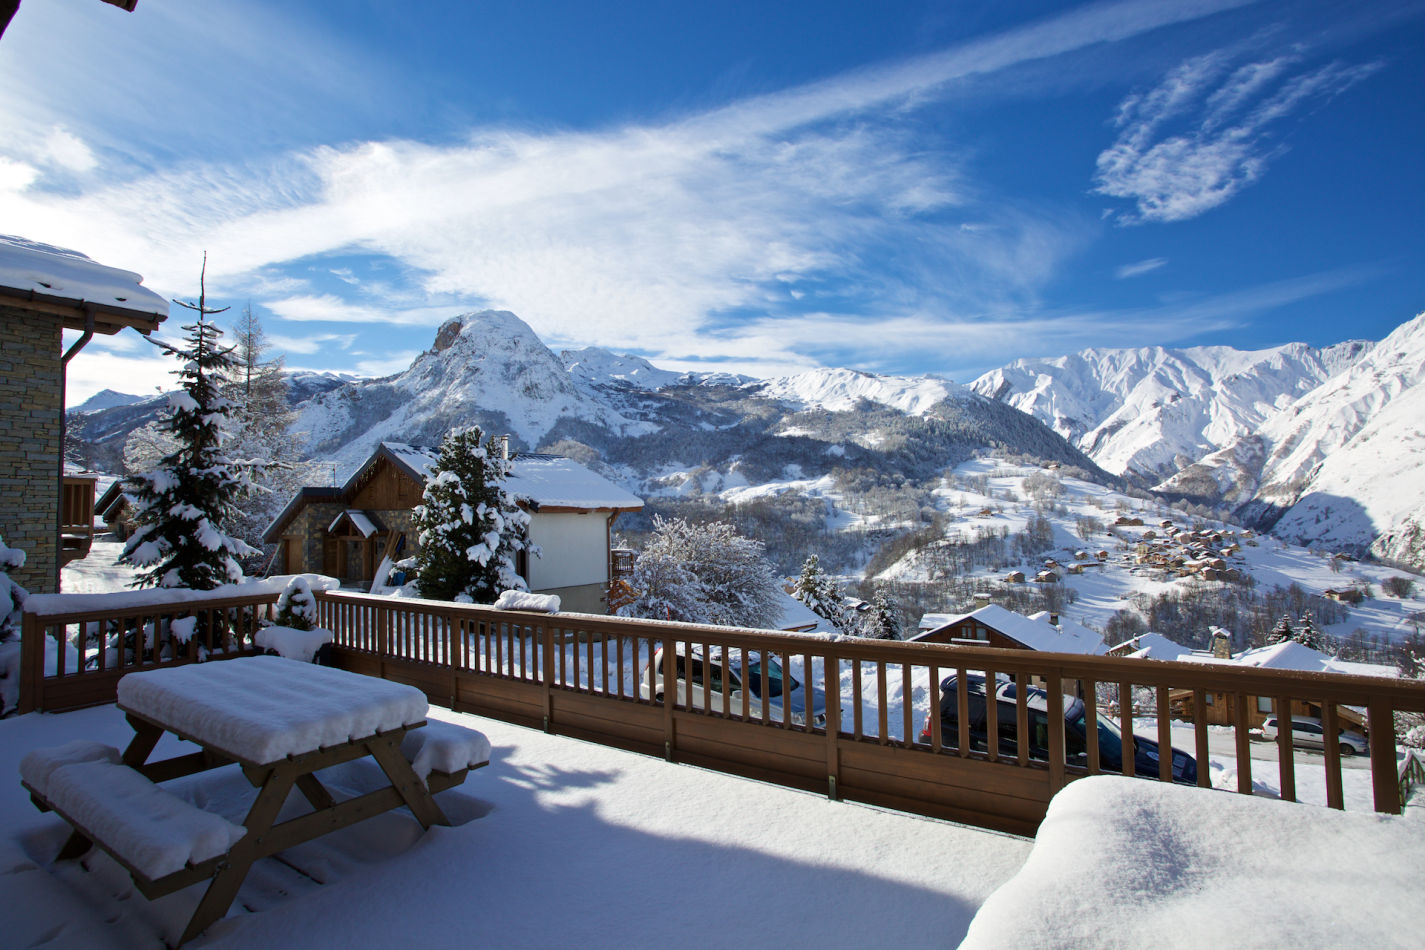 chalet-view-image-27